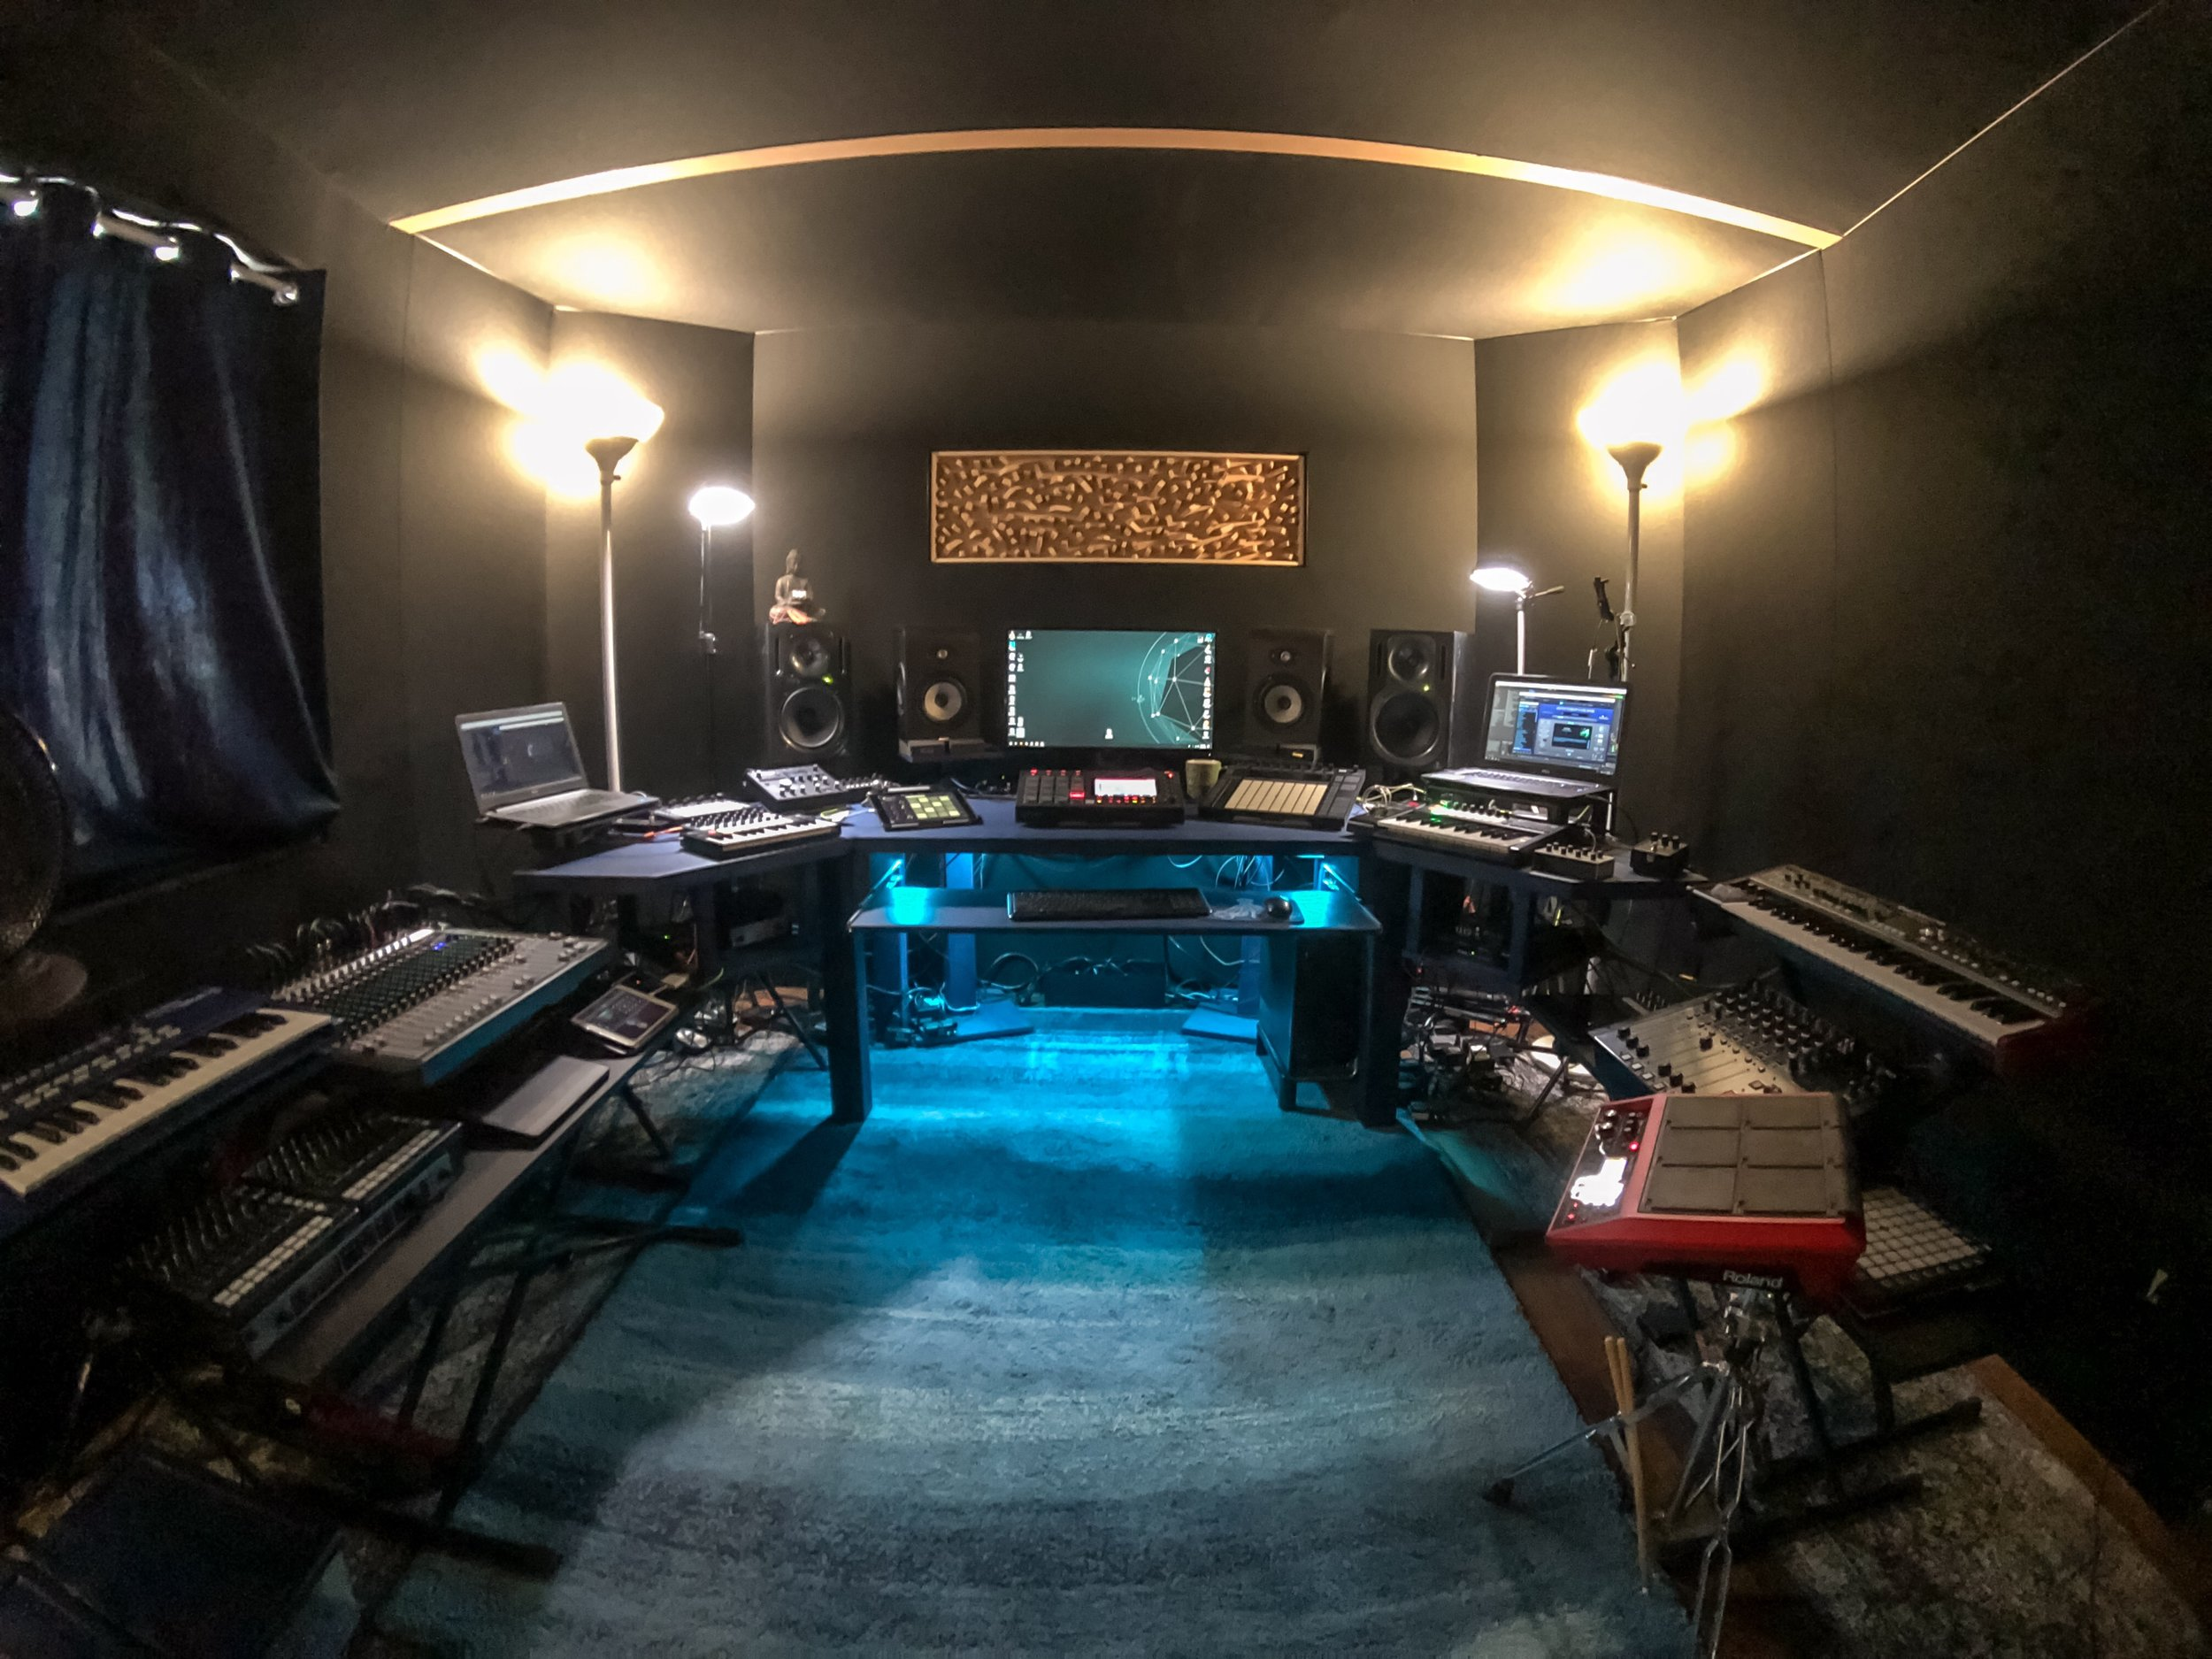 My work space at the start of 2019. I spend all-day, everyday here. My bedroom is the room next to this… 😲🤓😜